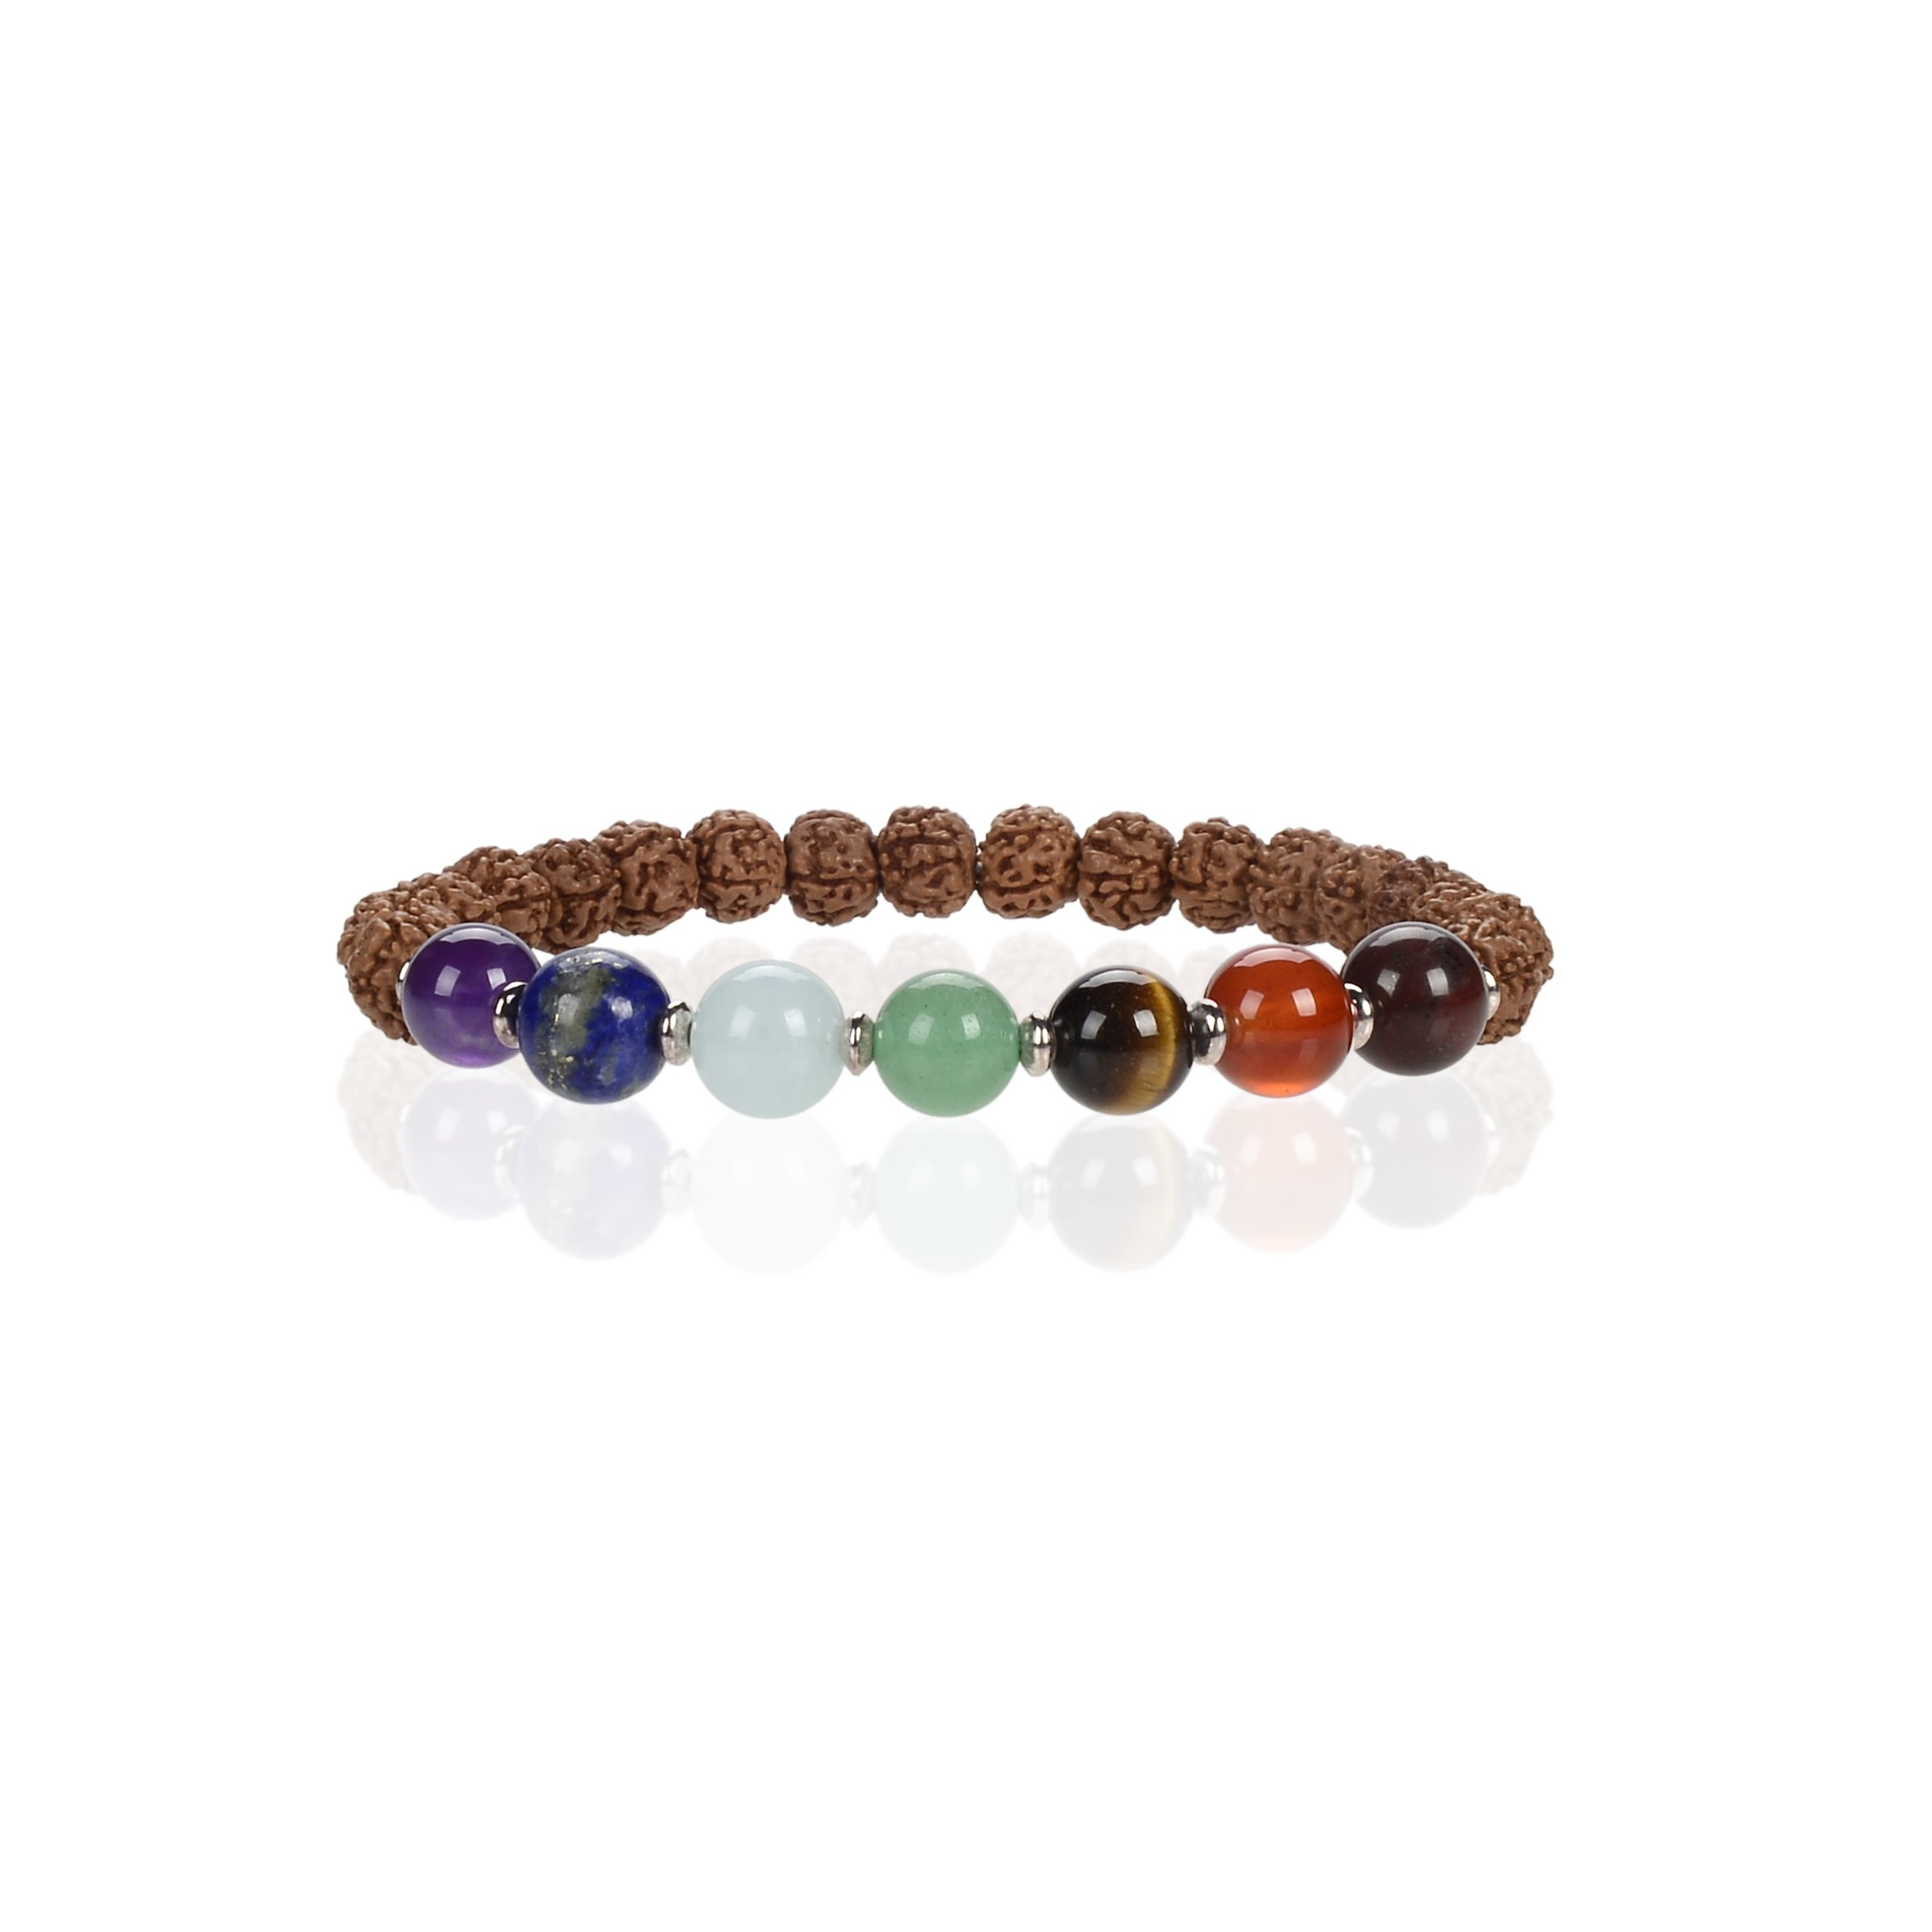 Cherry Tree Collection Natural Genuine Gemstone Chakra Stretch Bracelet | 8mm Beads, Silver Spacers | 7'' Men/Women (Rudraksha)